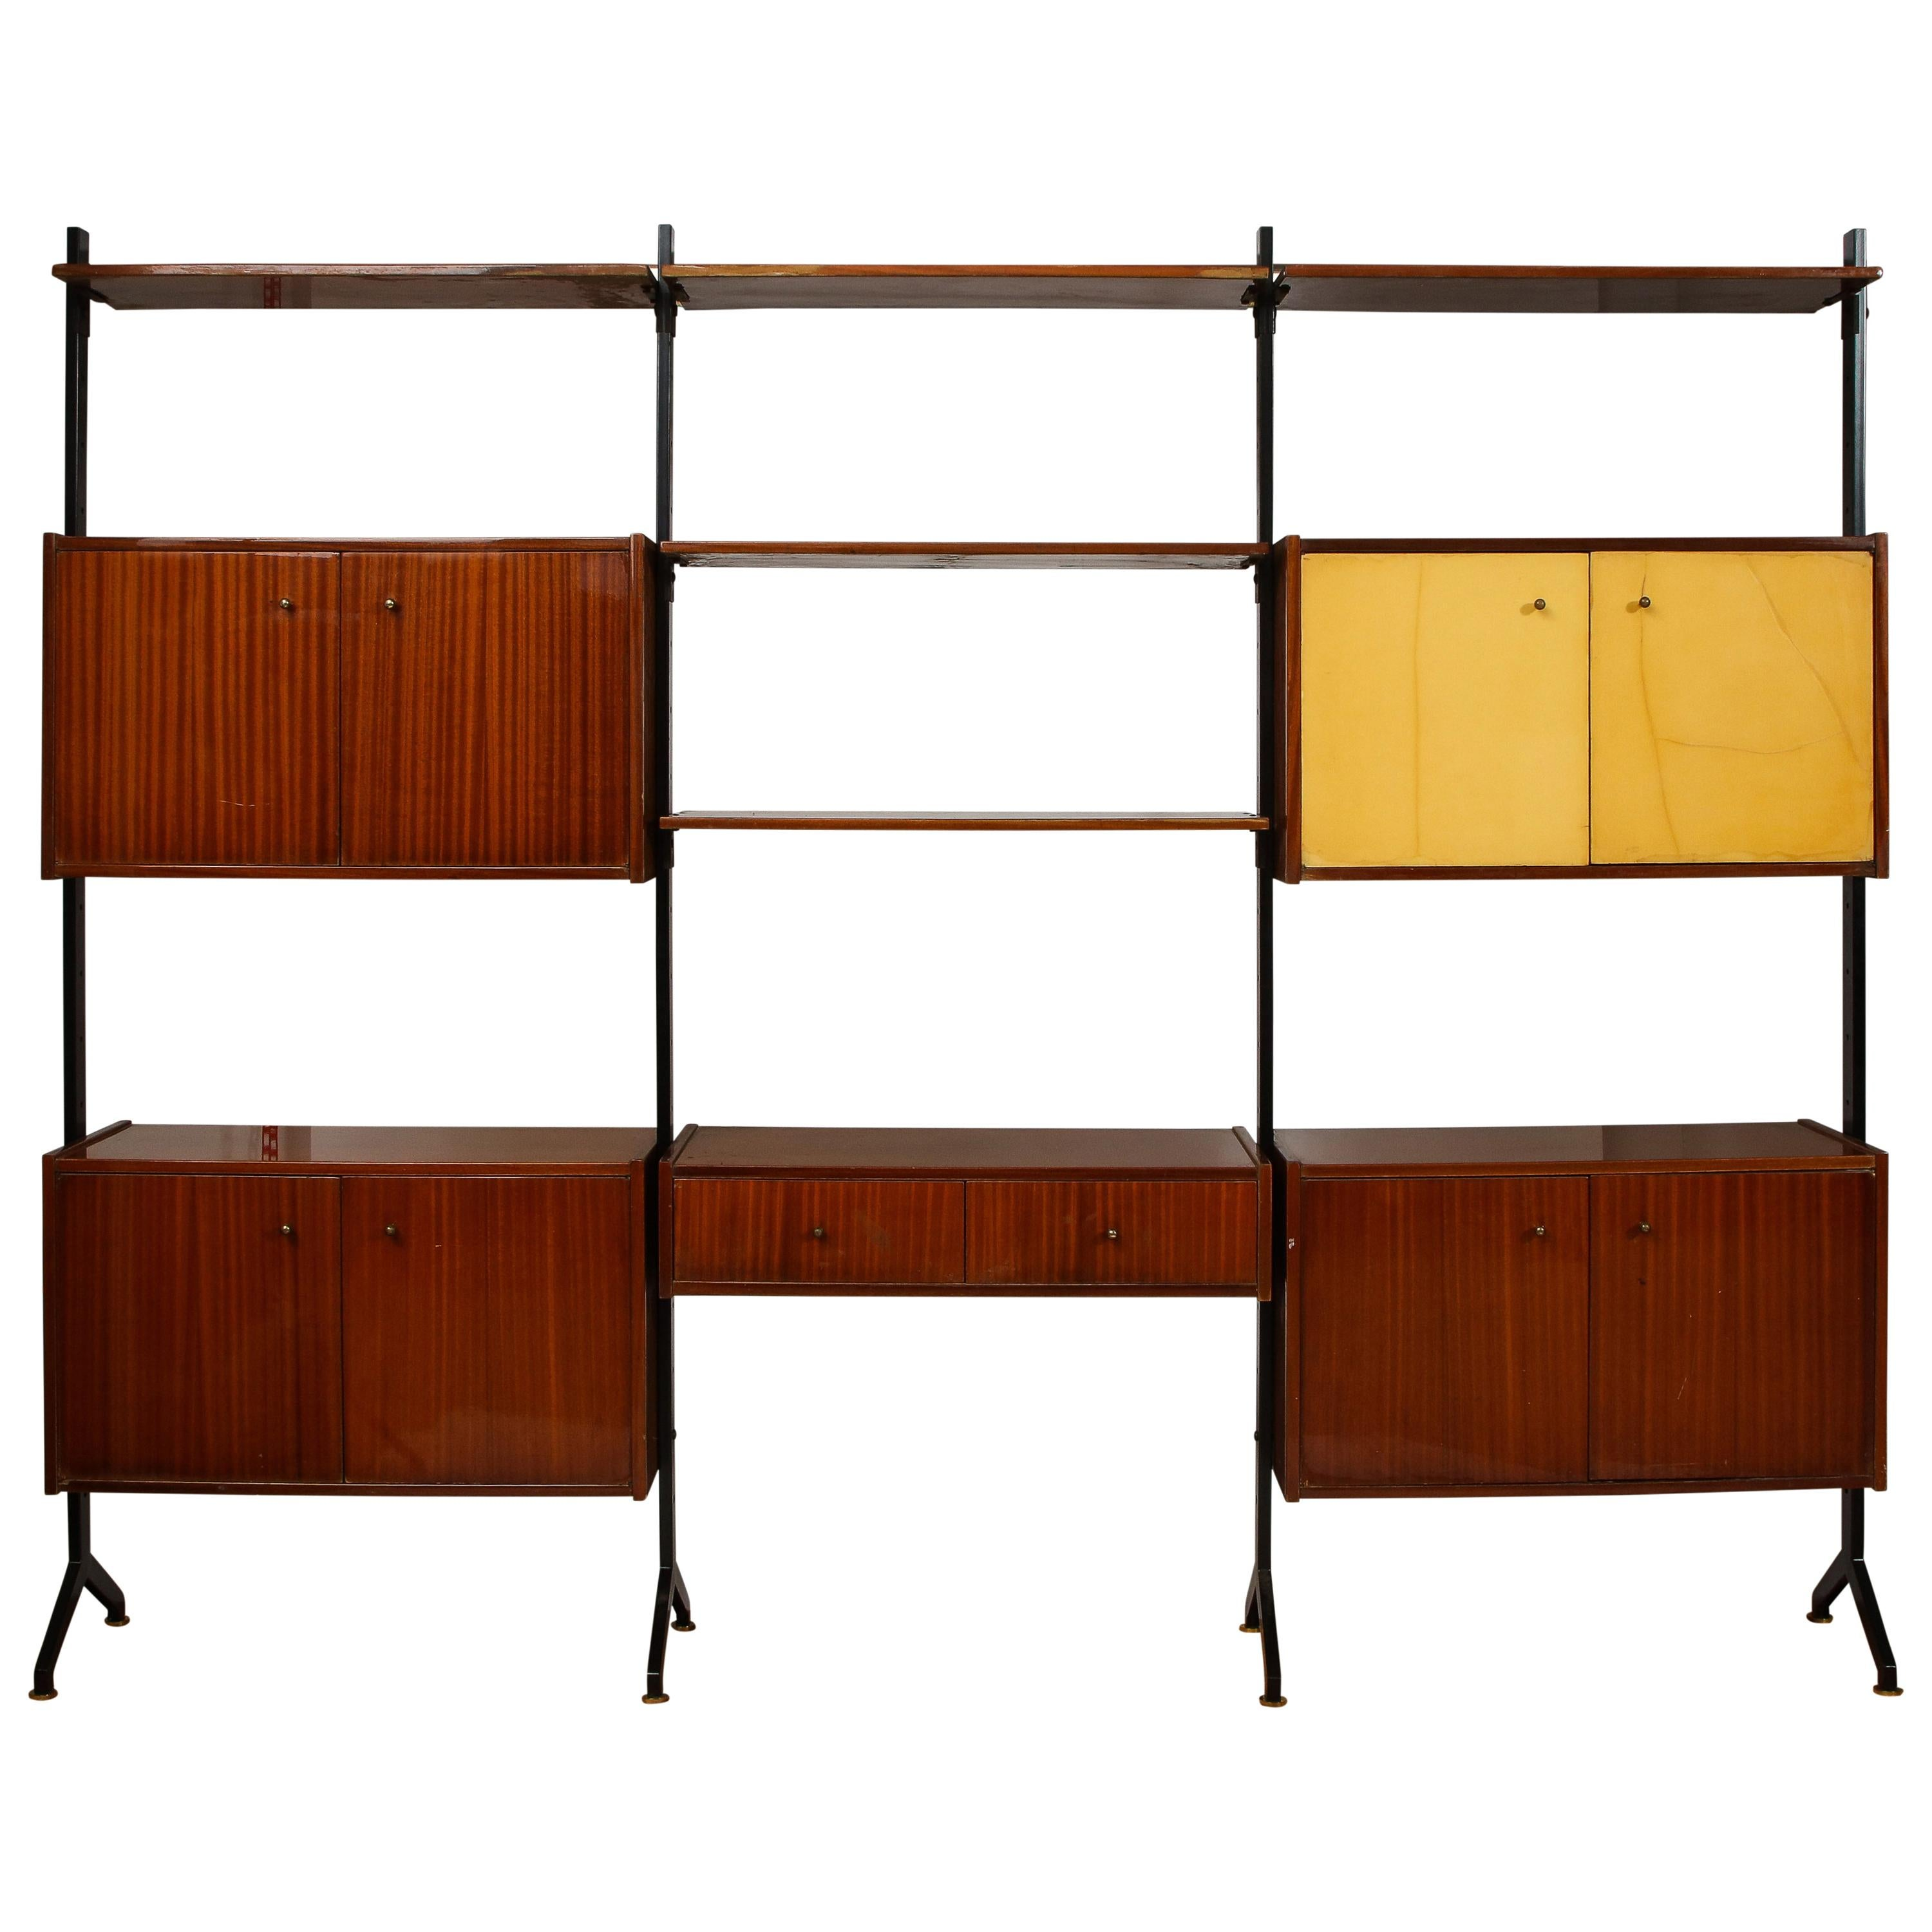 RB Rossana Multi-Storage Shelving Unit in the Style of Ico Parisi, Italy, 1960s